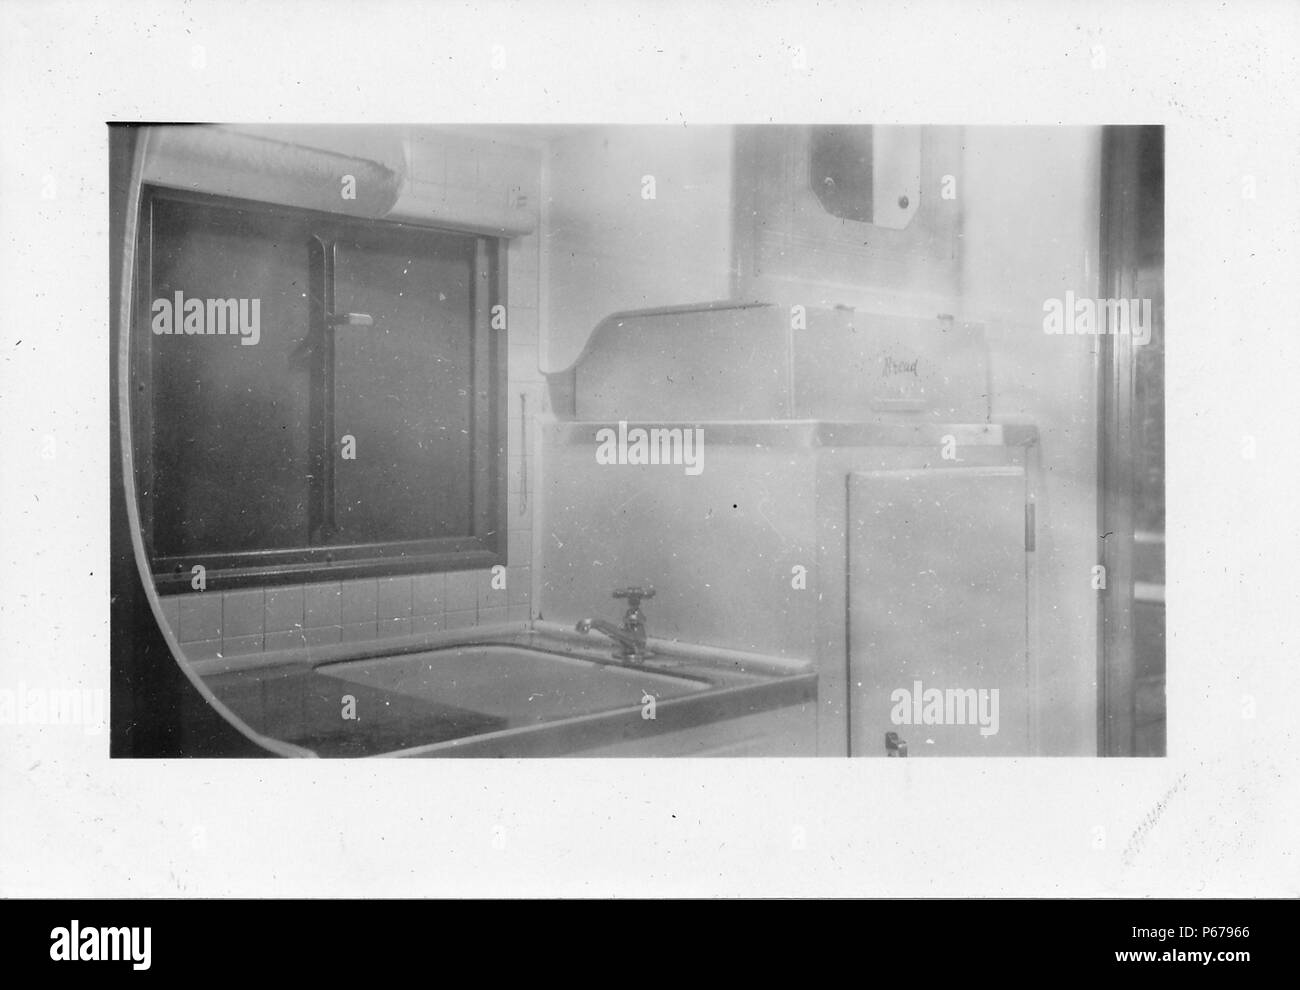 Black and white photograph, showing a small, partially tiled kitchenette located in the cramped interior of a Mid-century caravan or trailer home, with a sink, refrigerator, and window, likely photographed in Ohio in the decade following World War II, 1950. () - Stock Image